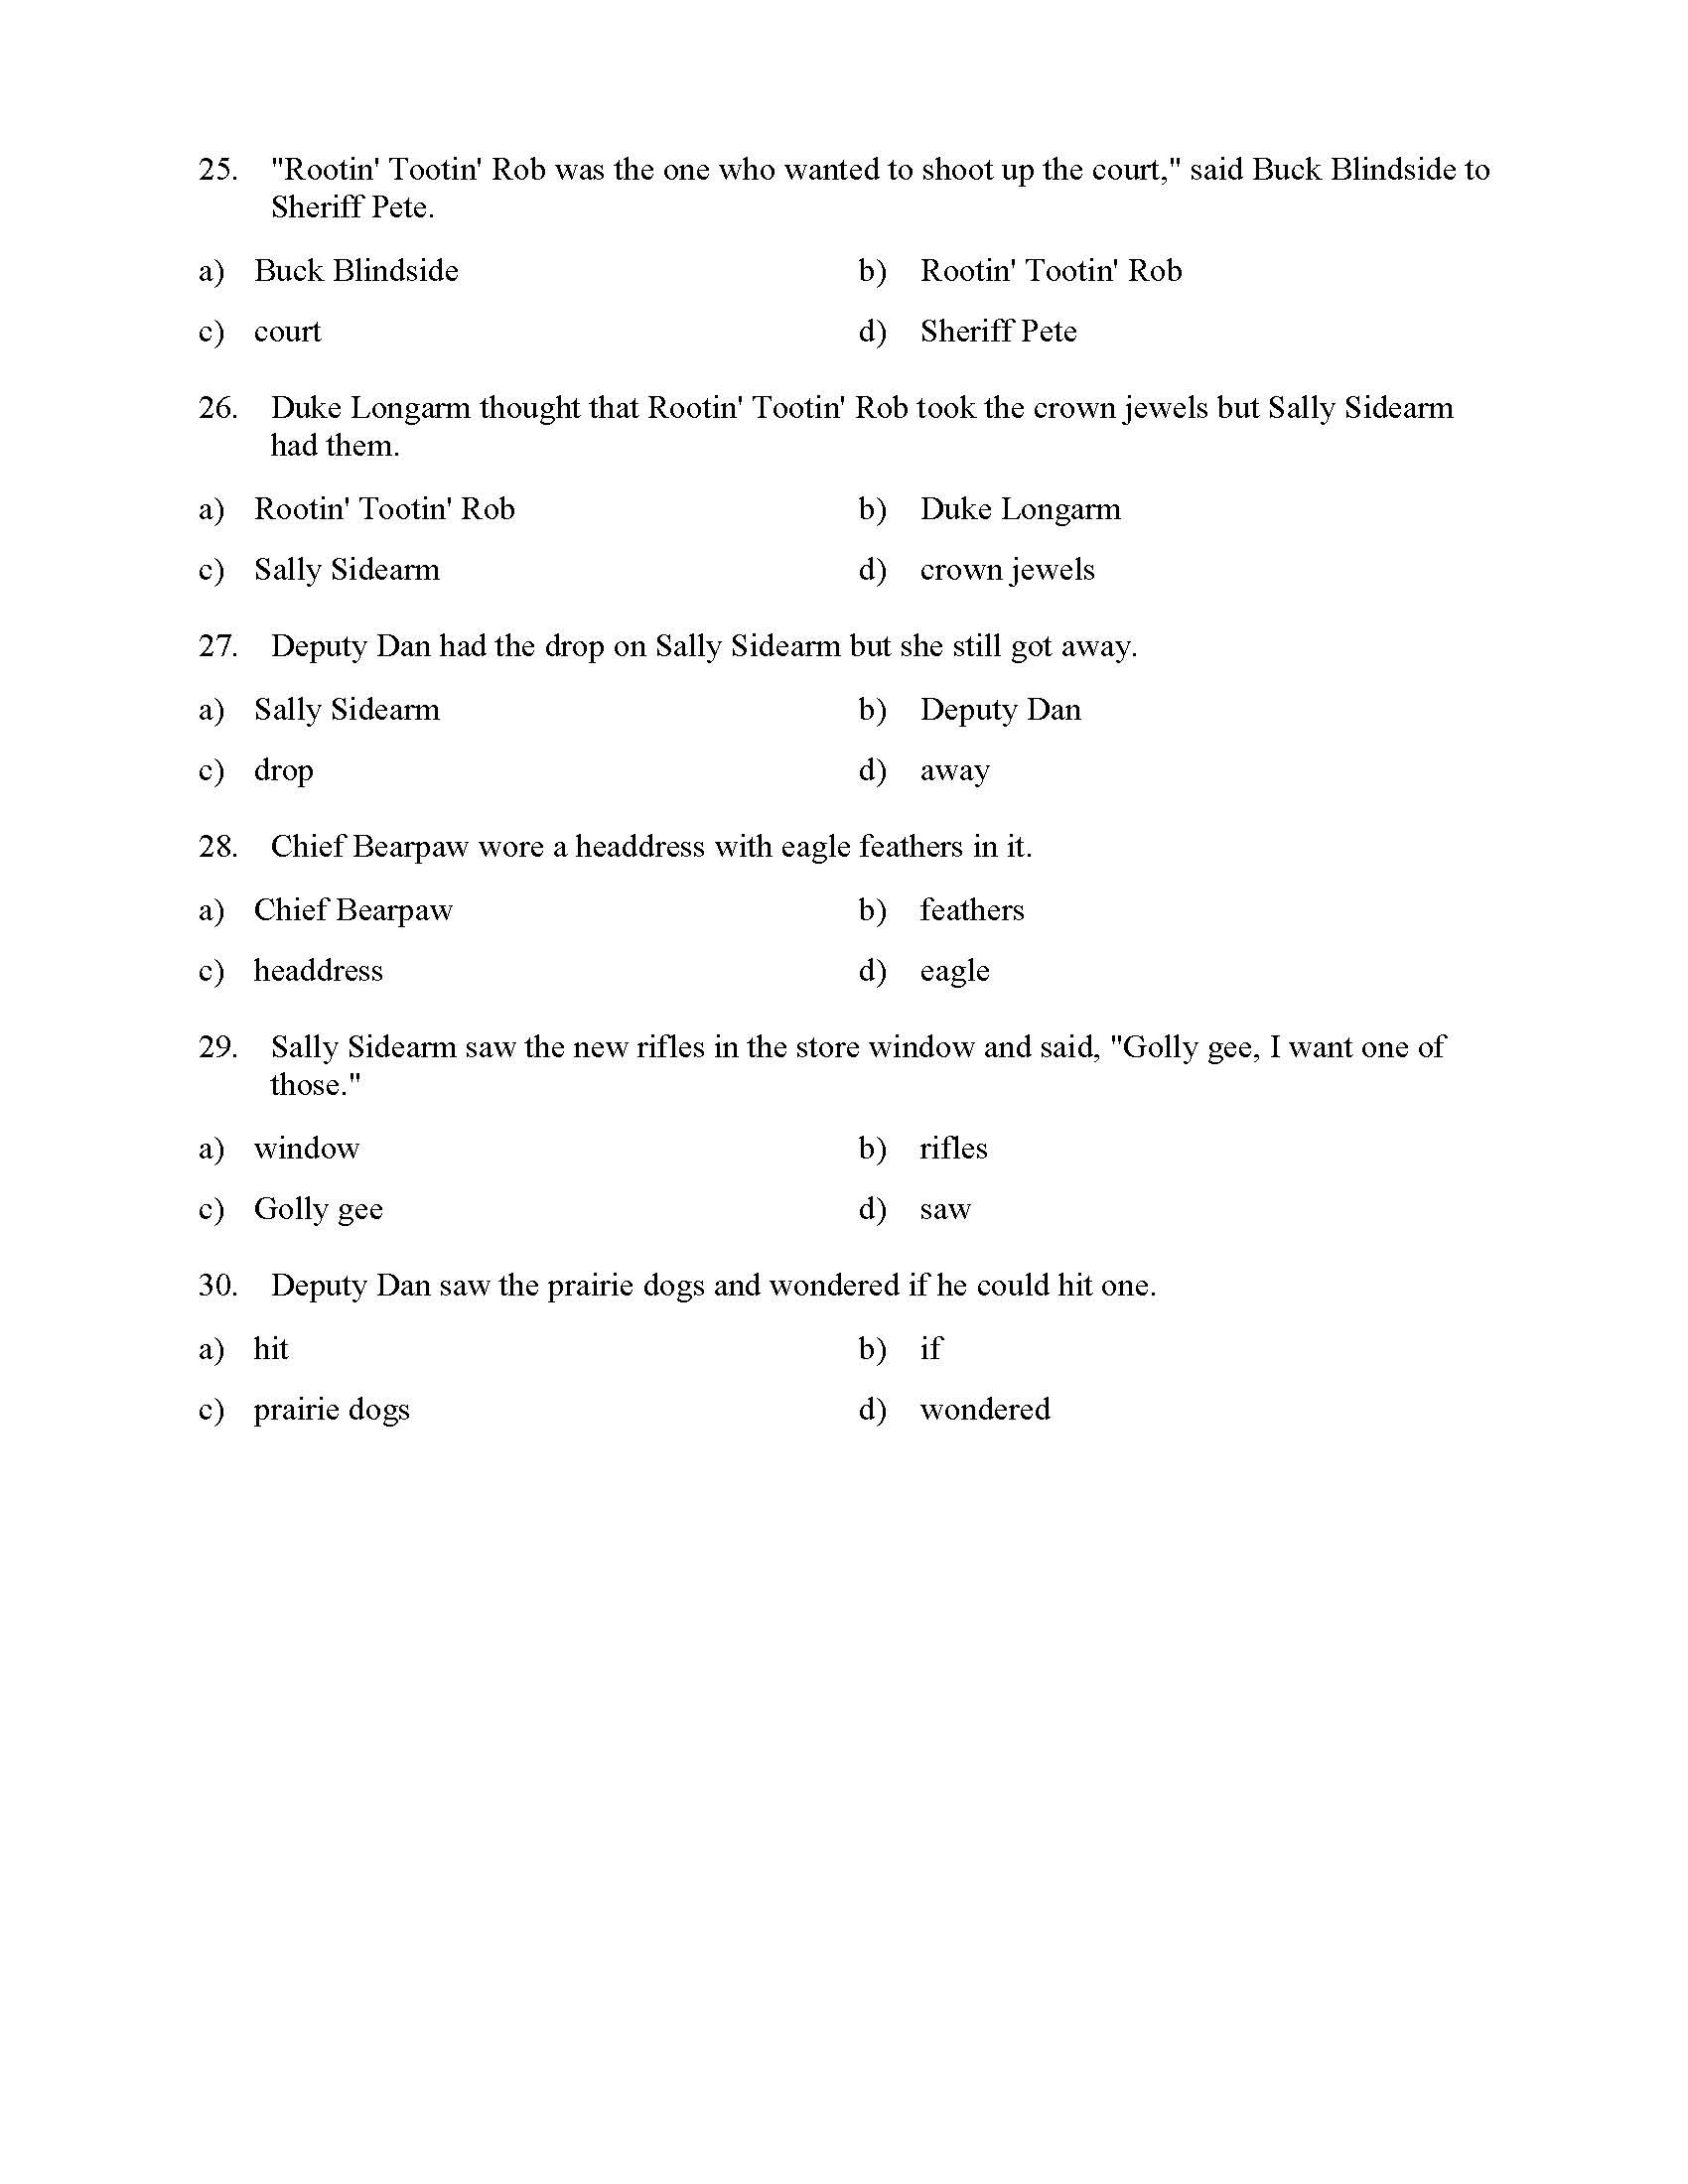 Pronouns and Antecedents Worksheet